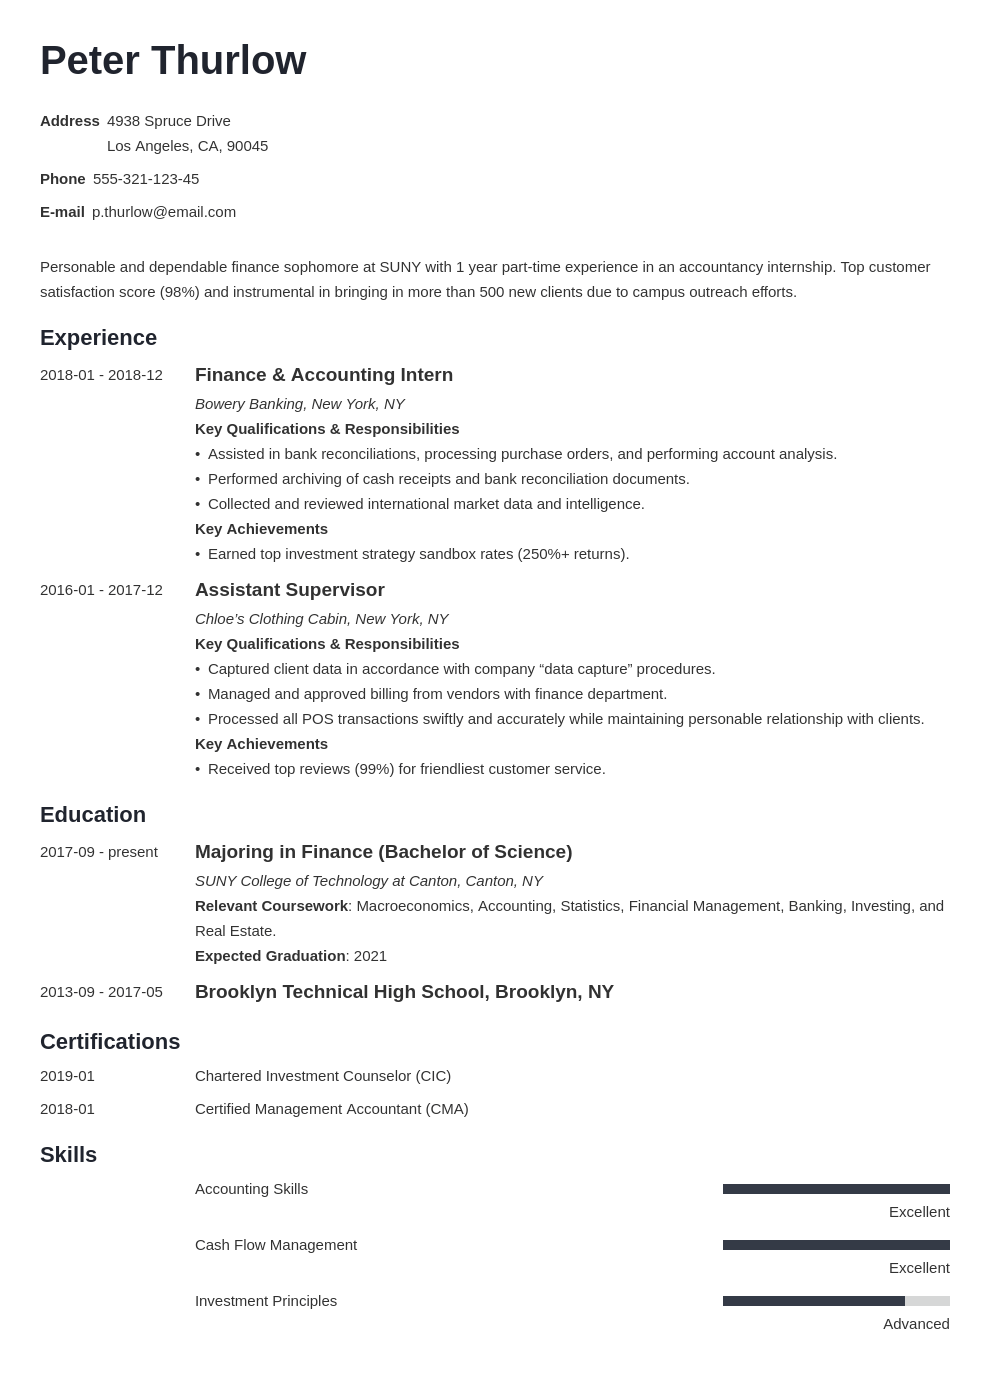 Resume Format For Applying Internship Internship Resume For College Students Guide 20 Examples